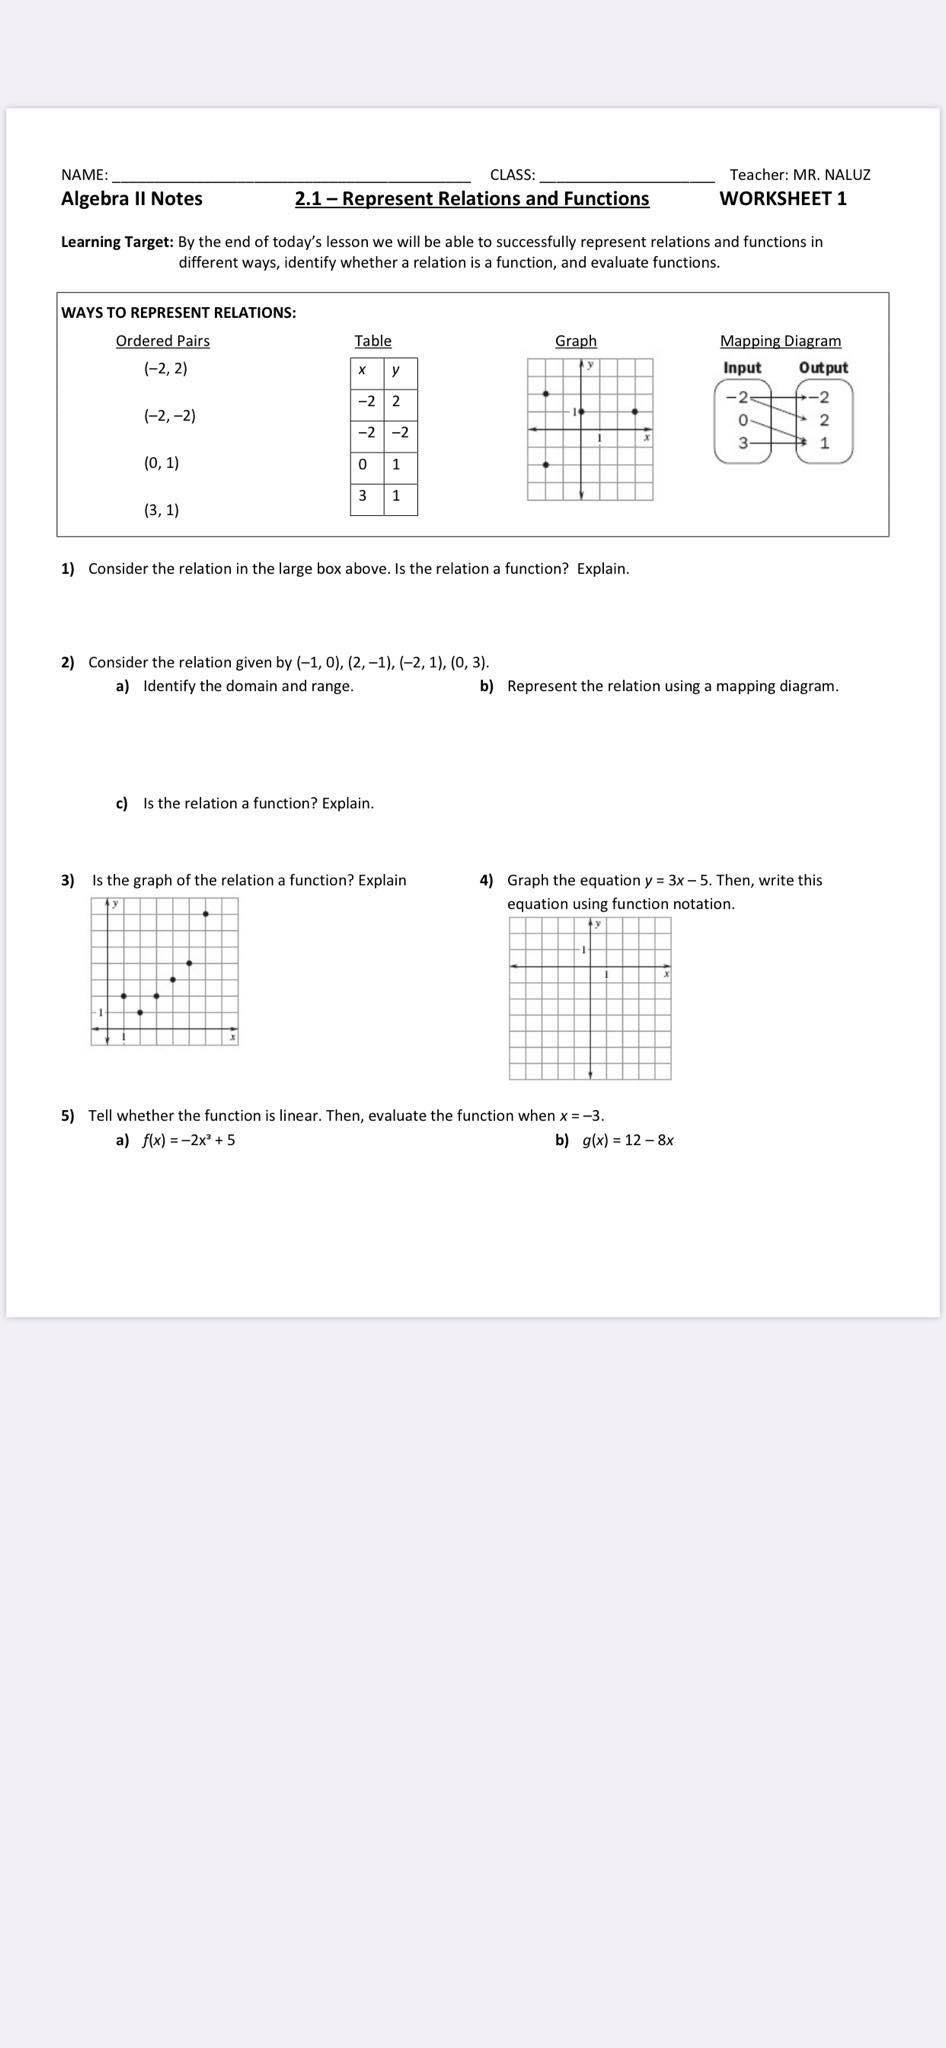 Solved: Name: Algebra Il Notes Class: 2.1 - Represent Rela